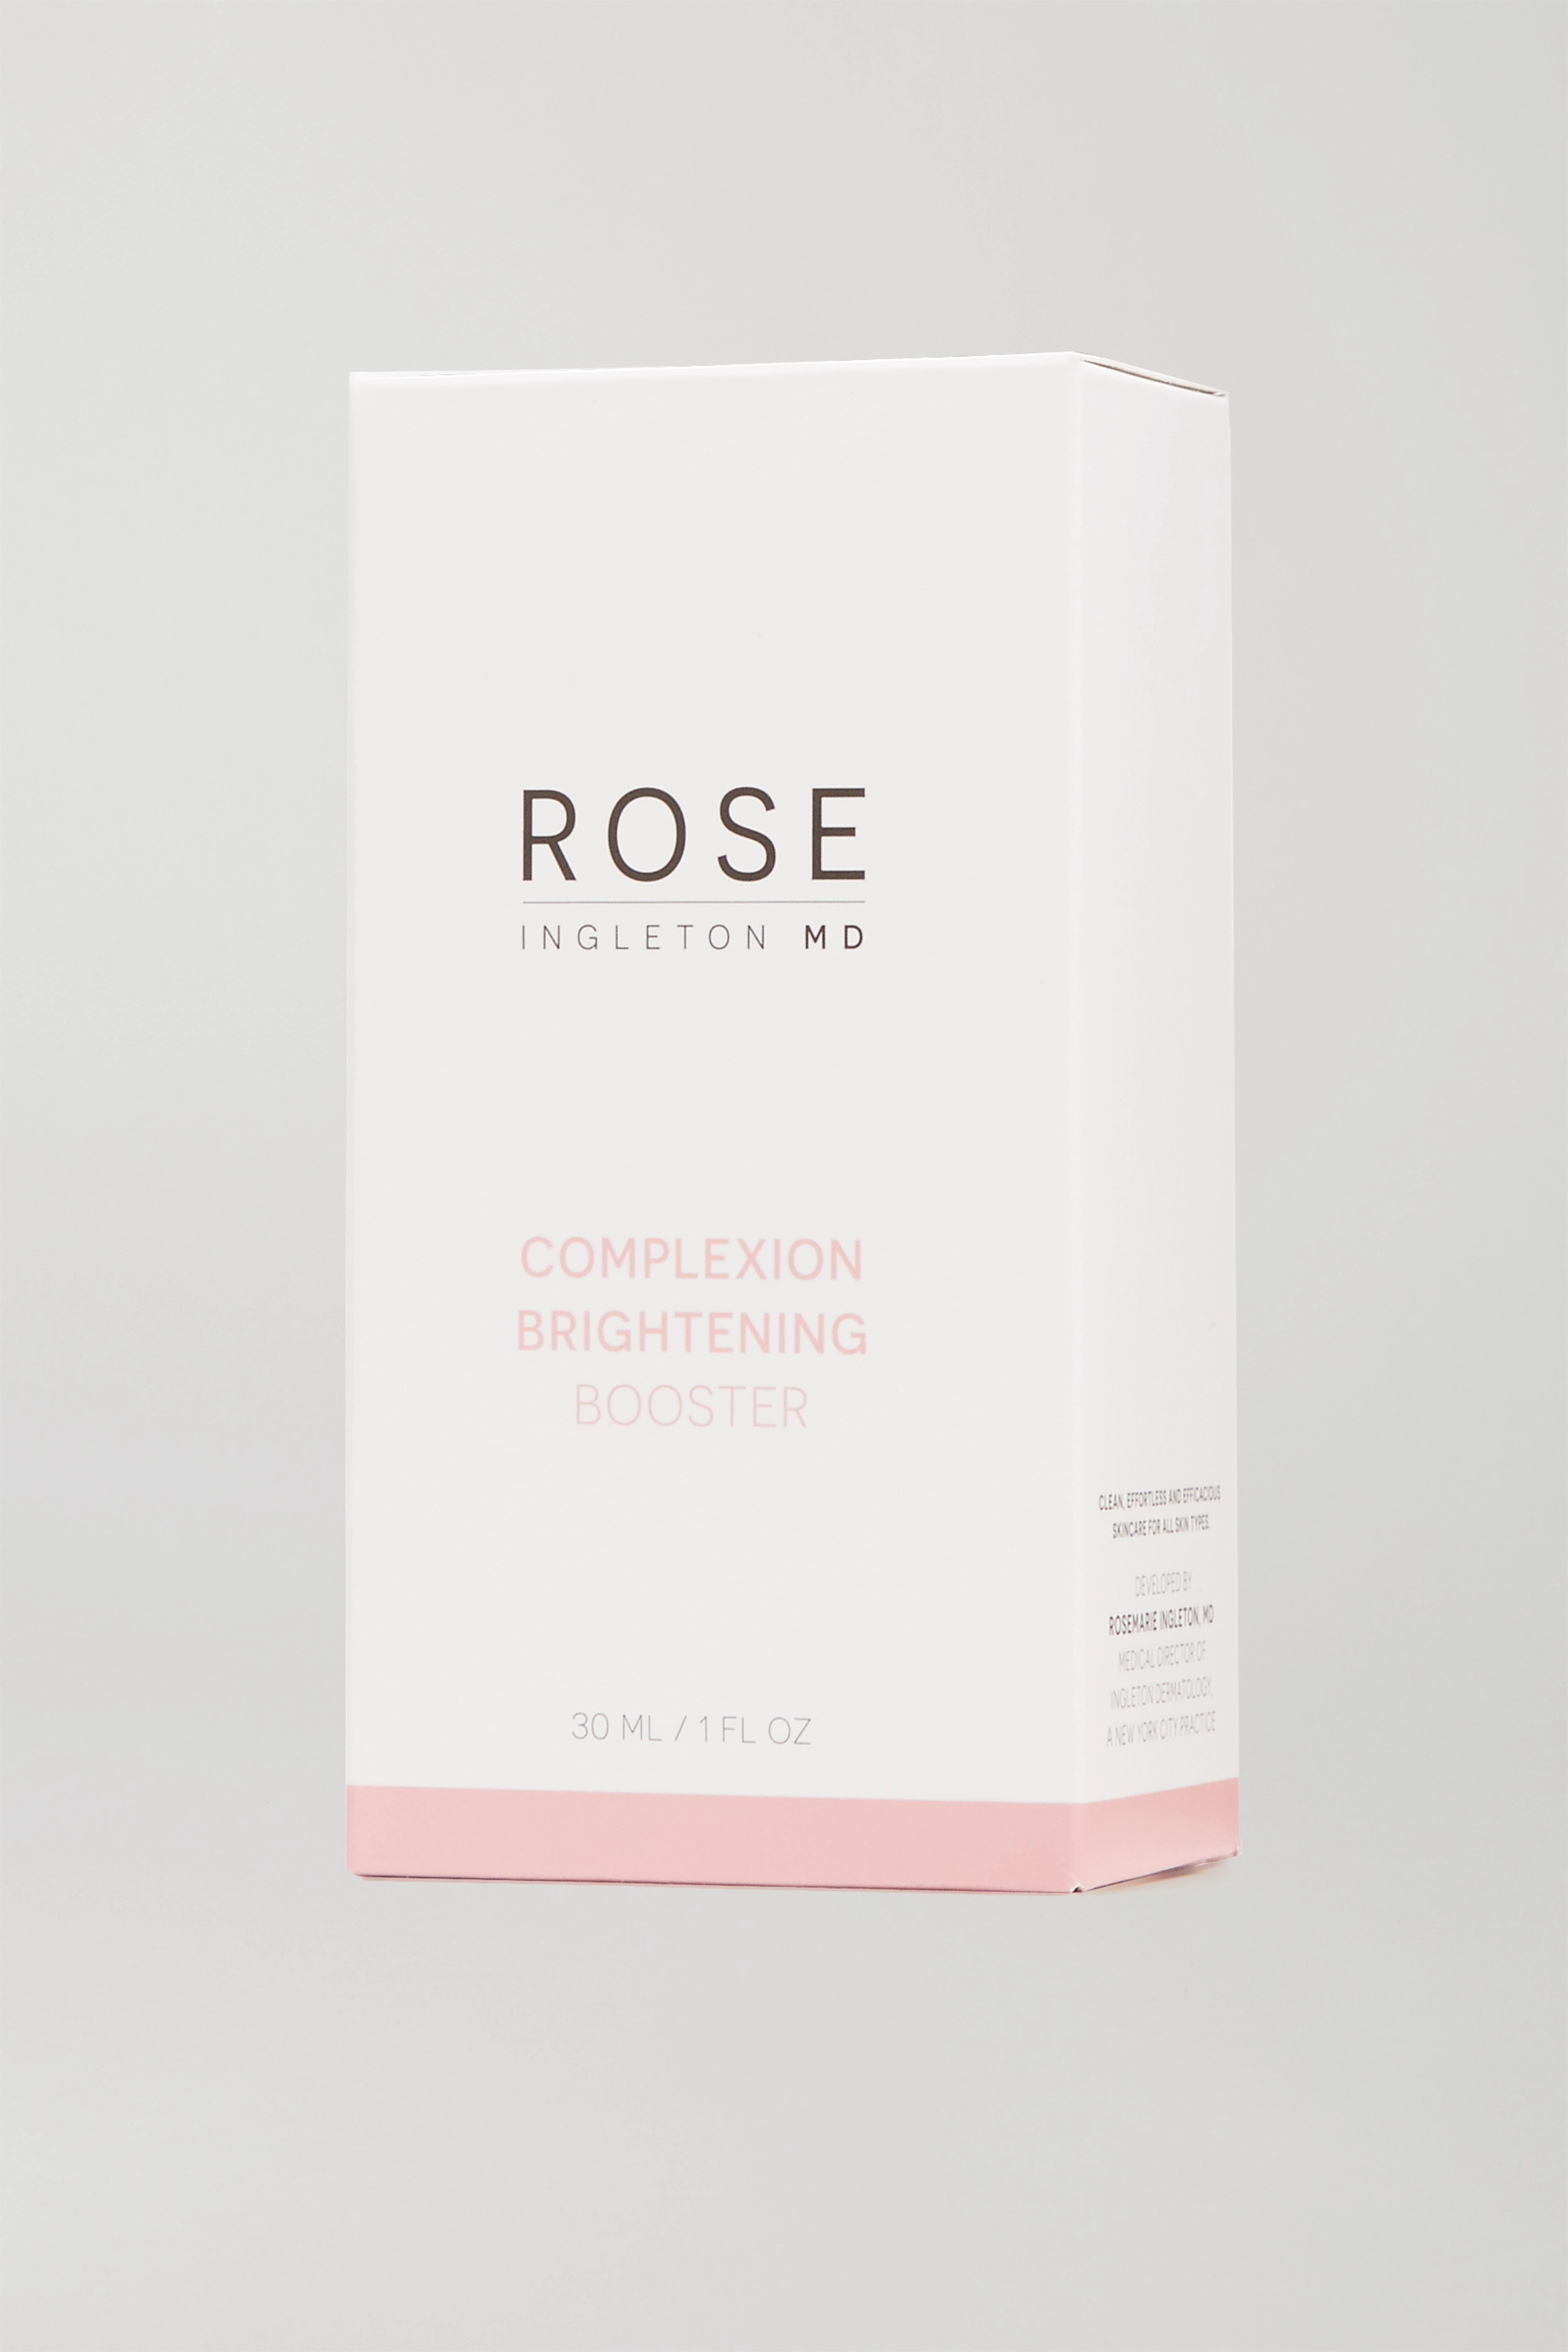 Rose MD Skin Complexion Brightening Booster, 30ml